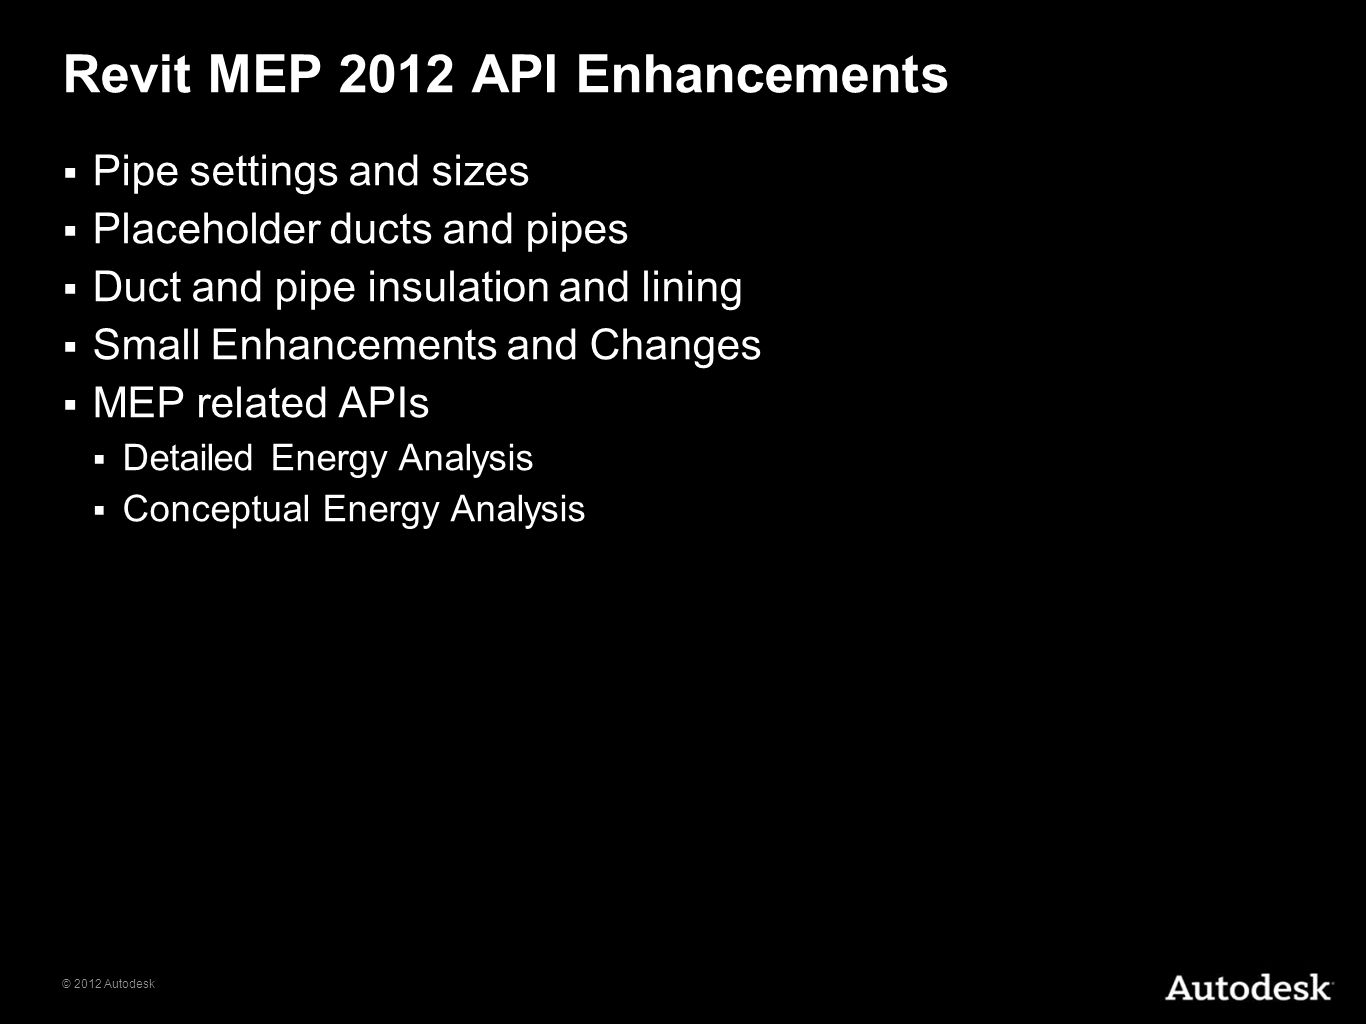 Revit MEP 2012 API Enhancements